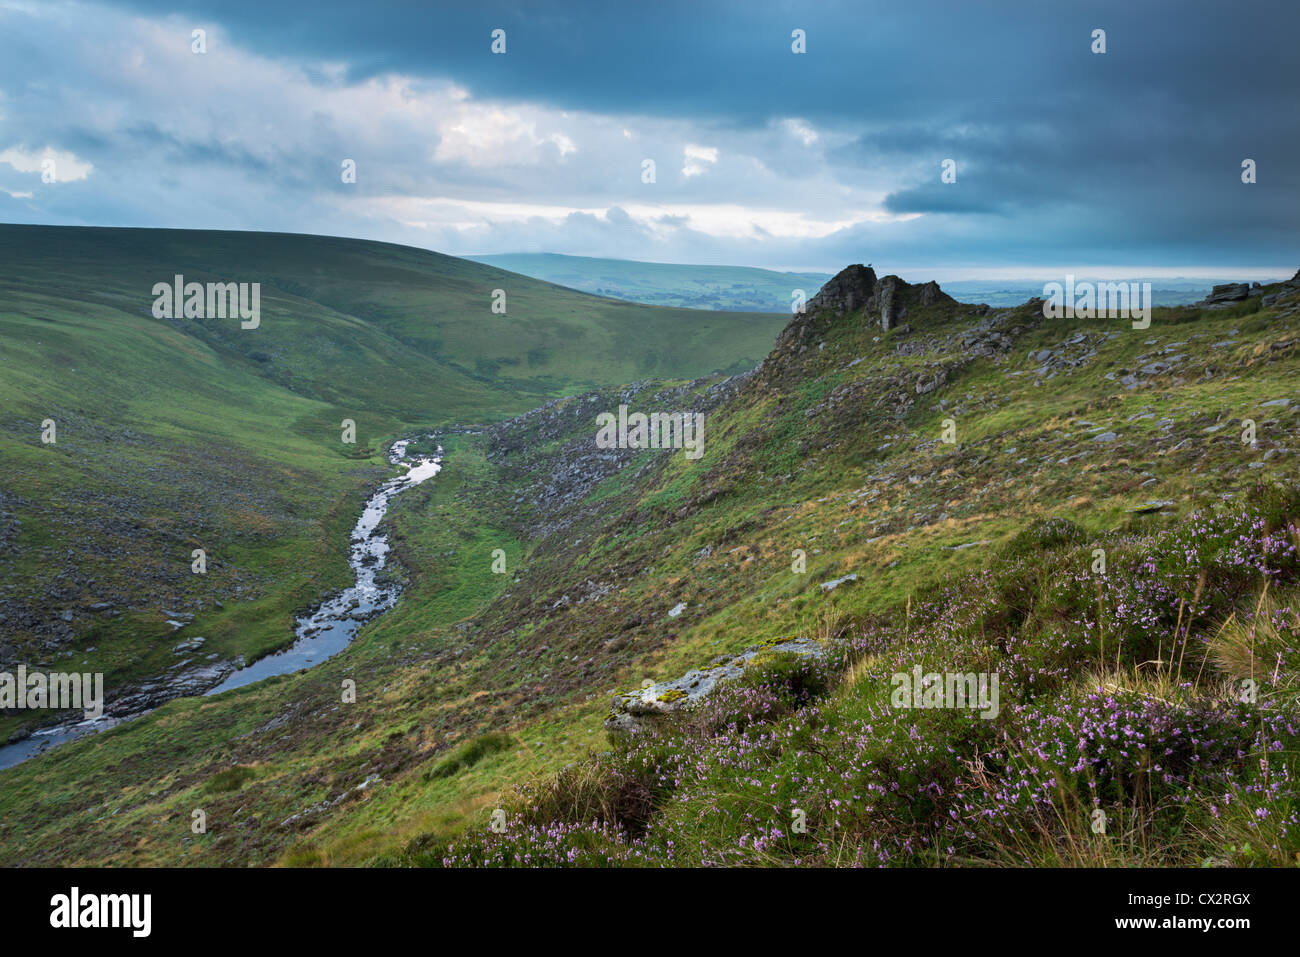 Dramatic scenery at Tavy Cleave, Dartmoor National Park, Devon, England. Summer (August) 2012. - Stock Image